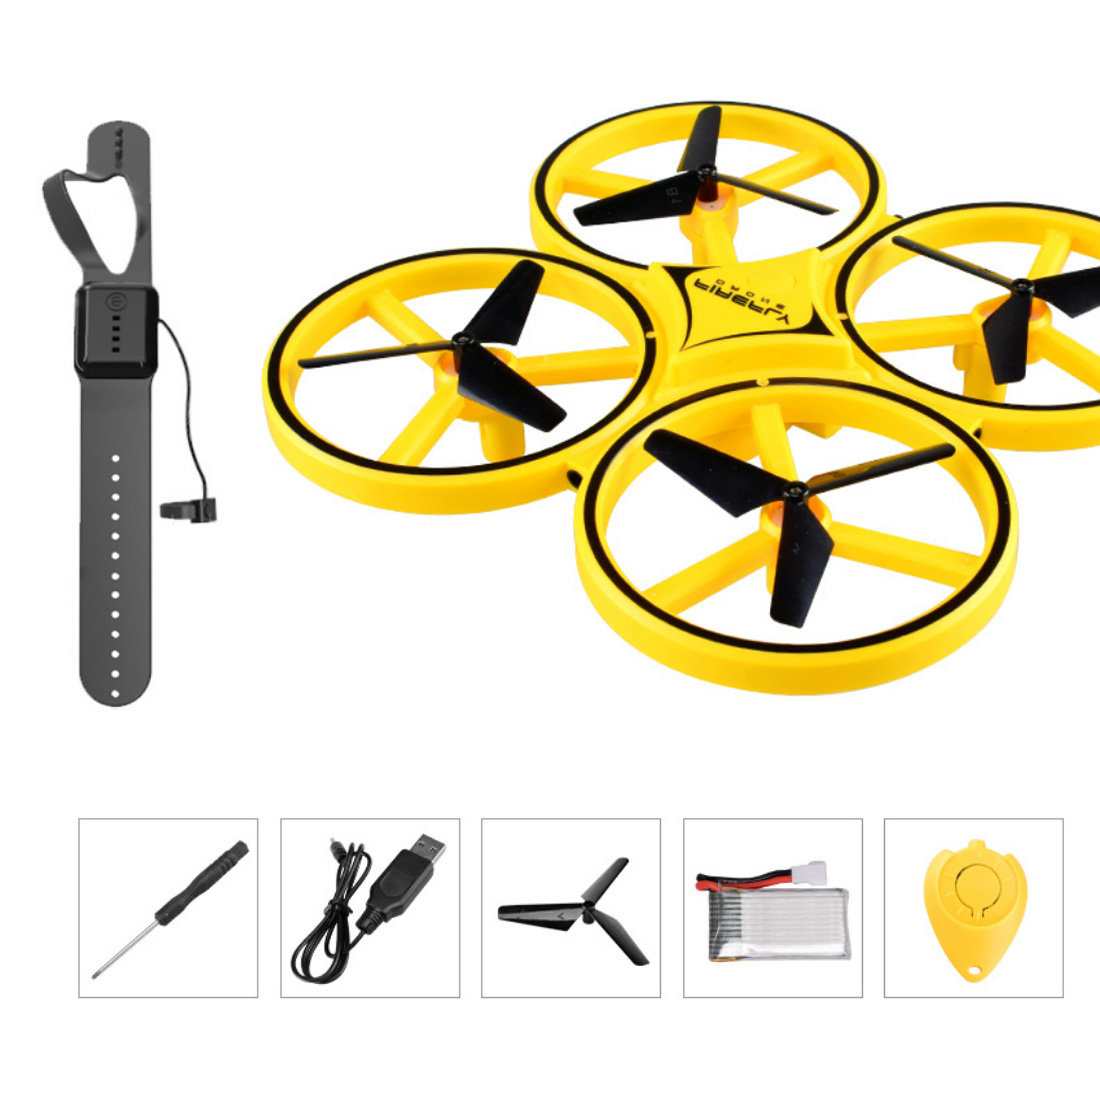 Flying Bee Infrared Sensor  Hand-Controred Mini Drone Gifts for Kids Toy